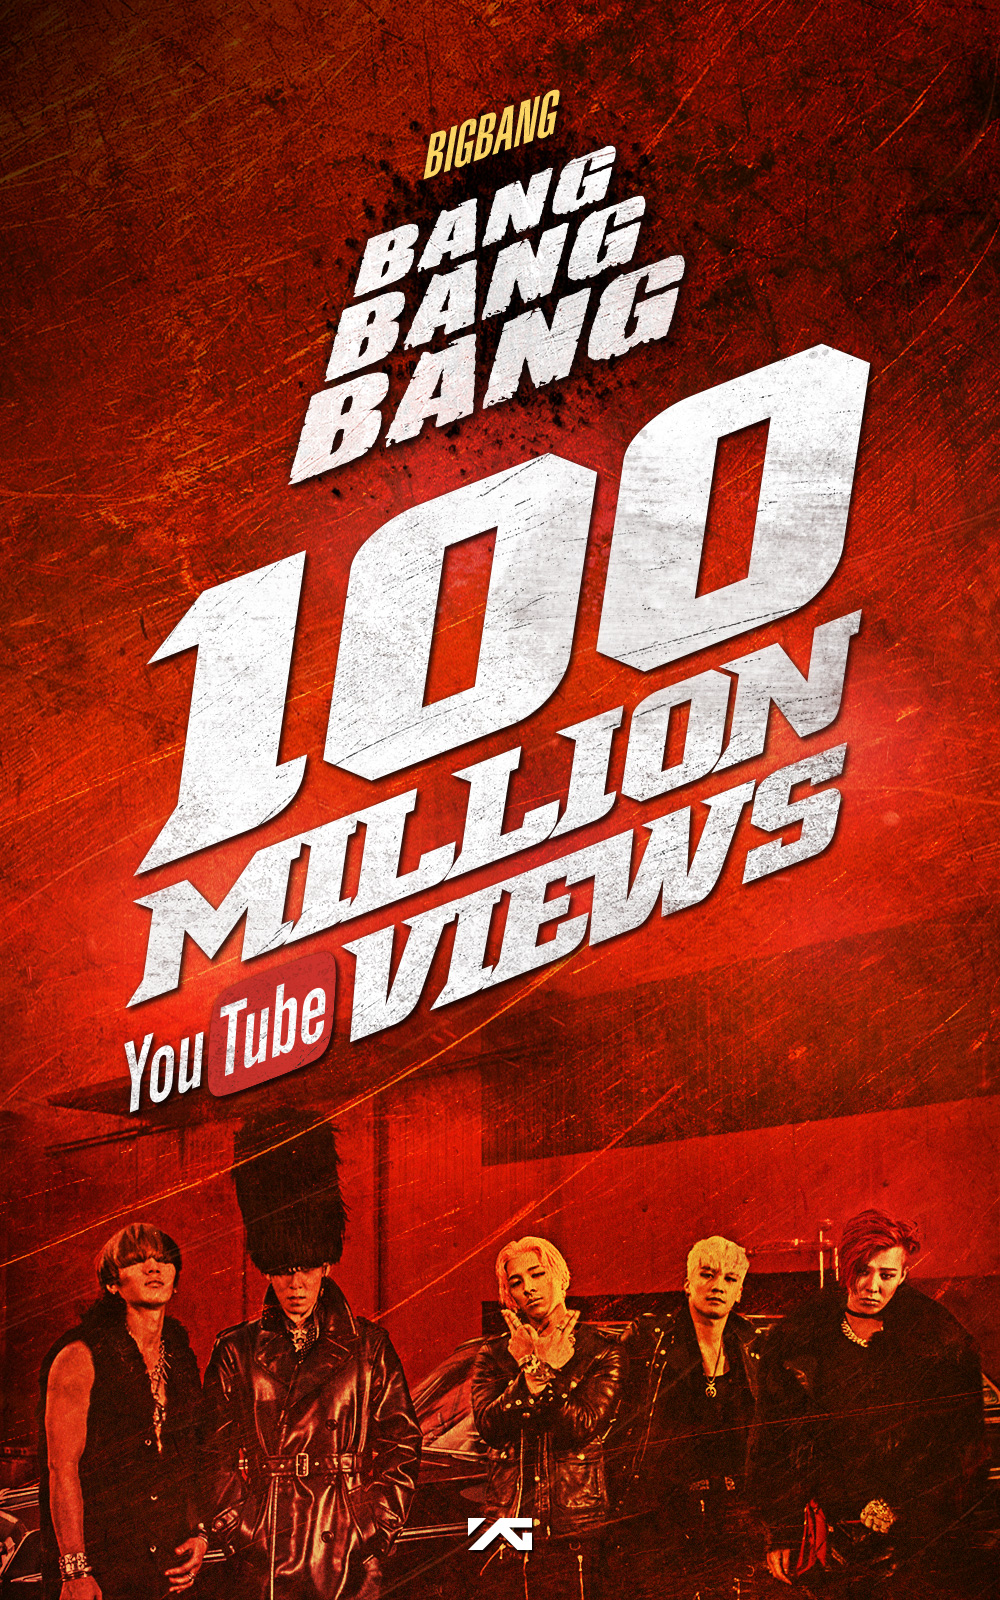 BIGBANGs BANG BANG BANG Reaches 100 Million Views on YouTube